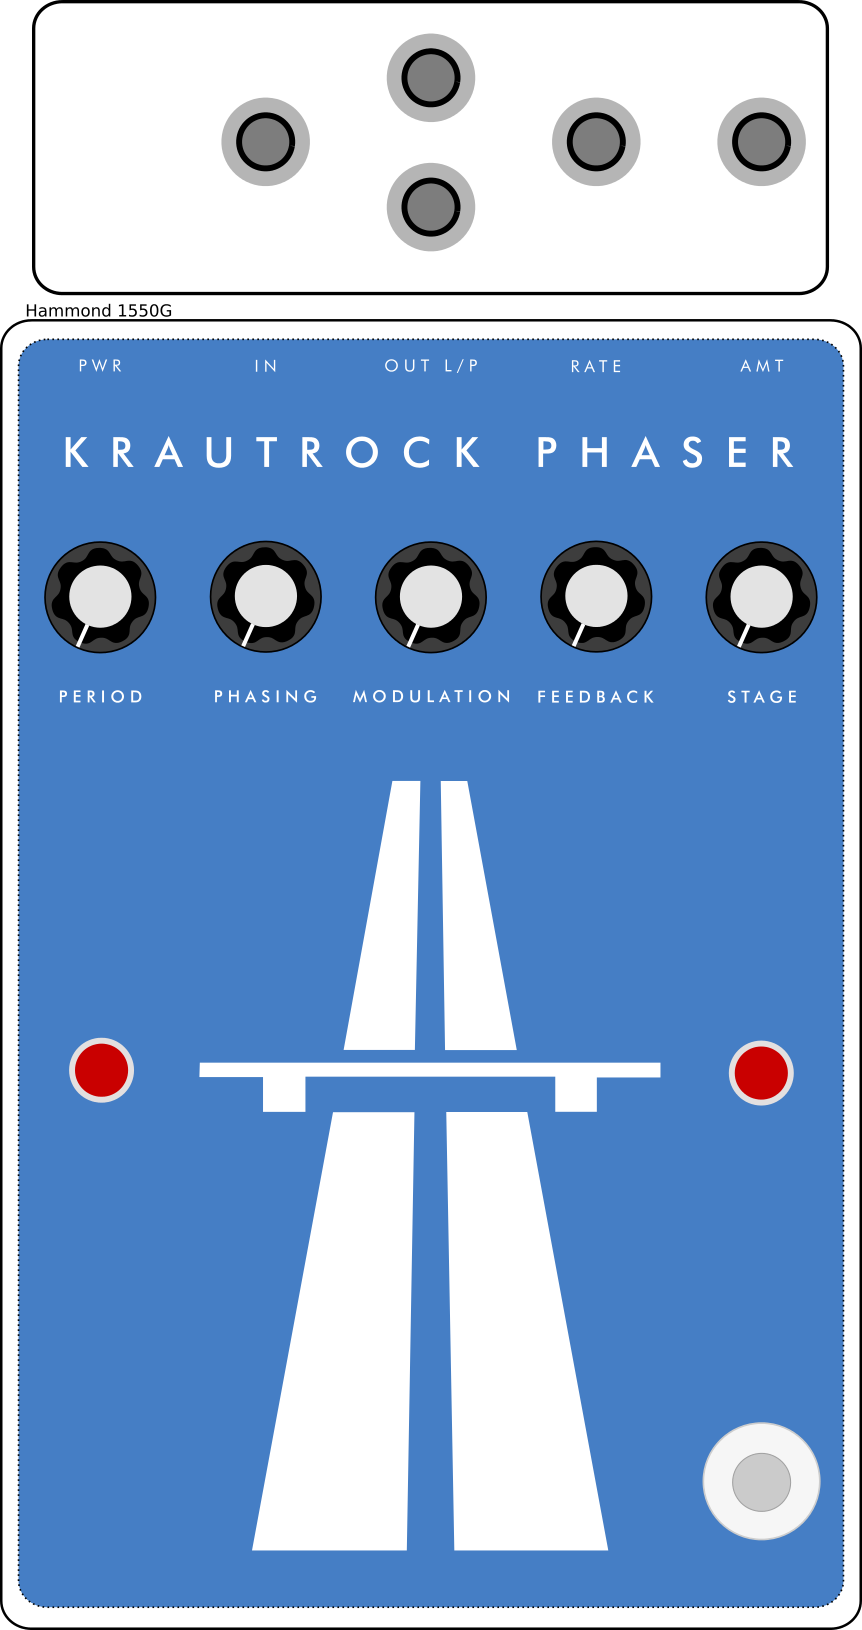 Krautrock Phaser front panel design attempt